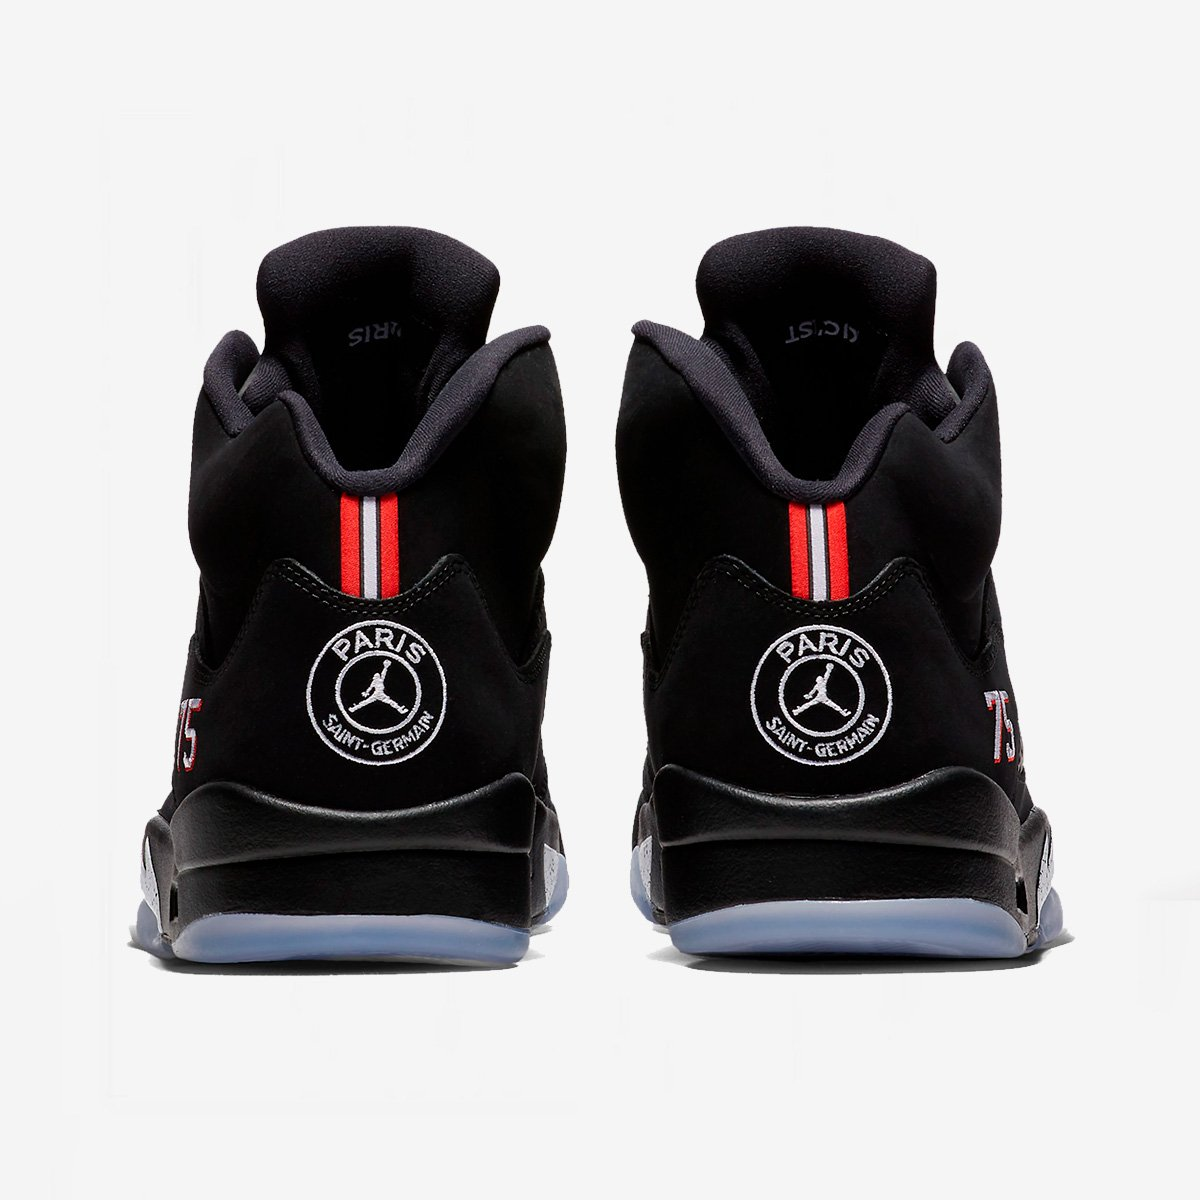 b6db16260757 The Air Jordan 5 x Paris Saint-Germain is in store NOW in BARCELONA! Hurry  there today to cop a pair! Vite vite! Any remaining pairs will go online!